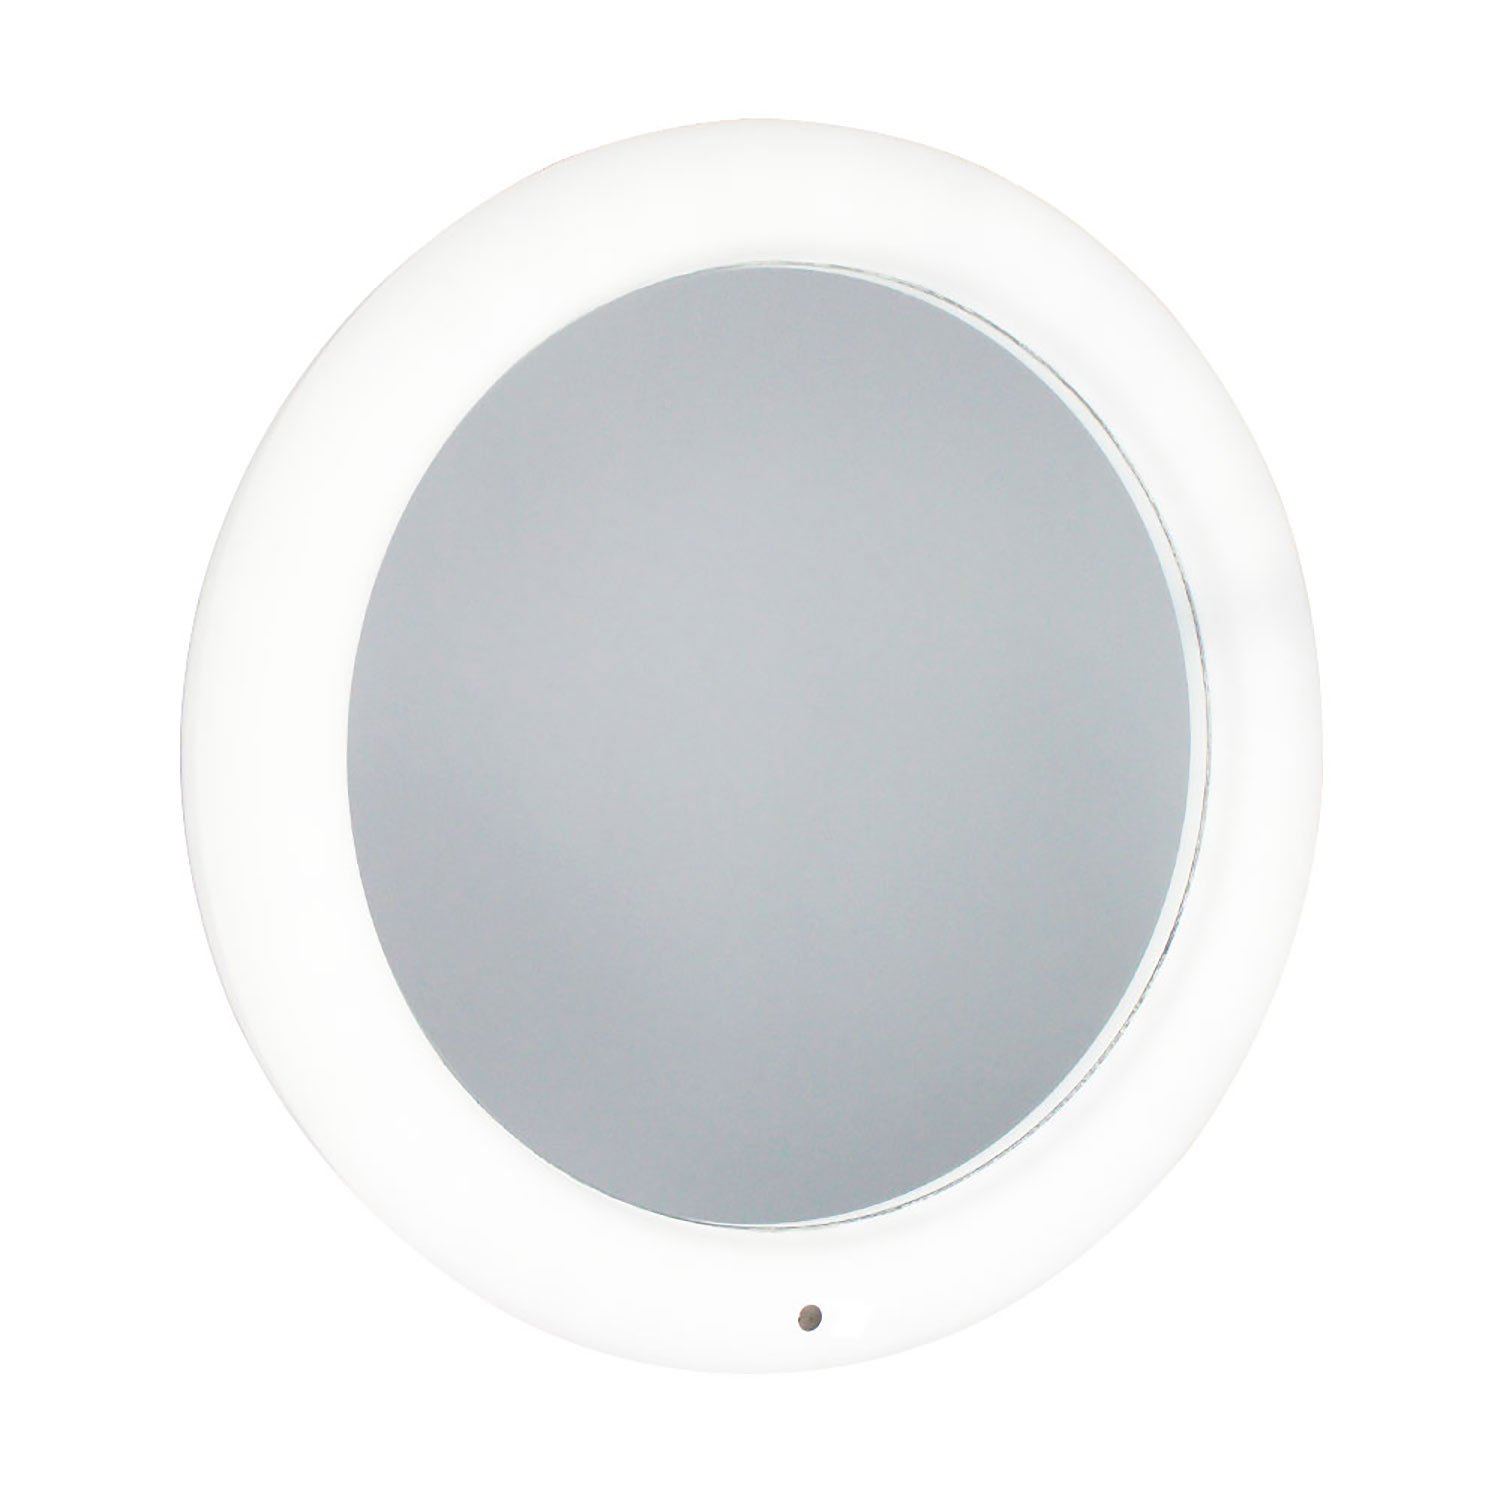 Taylor /& Brown Battery Operated Modern Round LED Illuminated Bathroom Mirror Light with Smart Touch Control